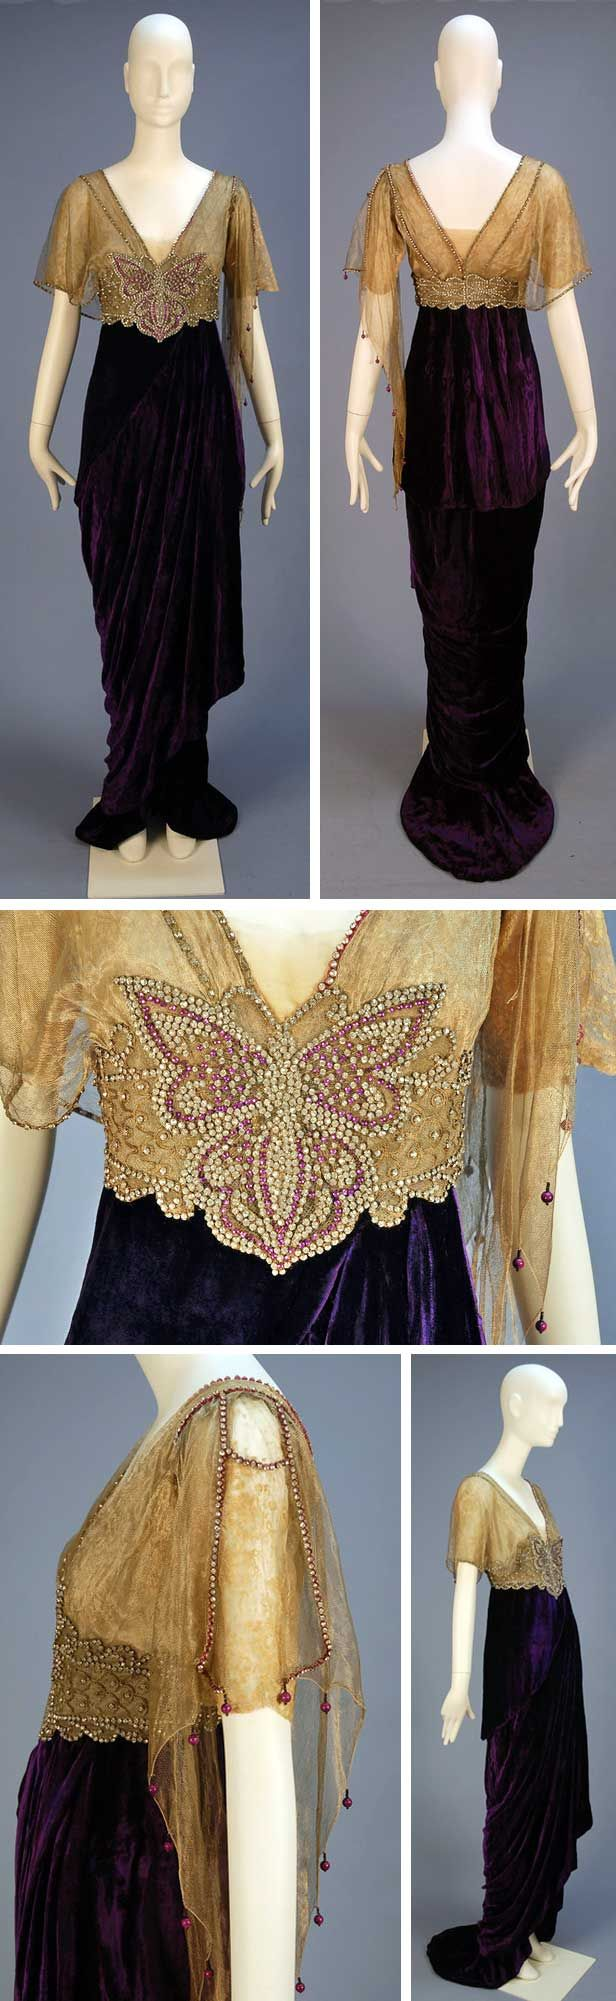 Evening gown, Joseph, New York, 1913. Royal purple panné silk with short-sleeved silk lace V-neck bodice asymmetrically draped in gold metallic mesh. High jeweled midriff band with clear center and magenta paste butterfly. Hobble skirt layered over short train. Whitaker Auctions